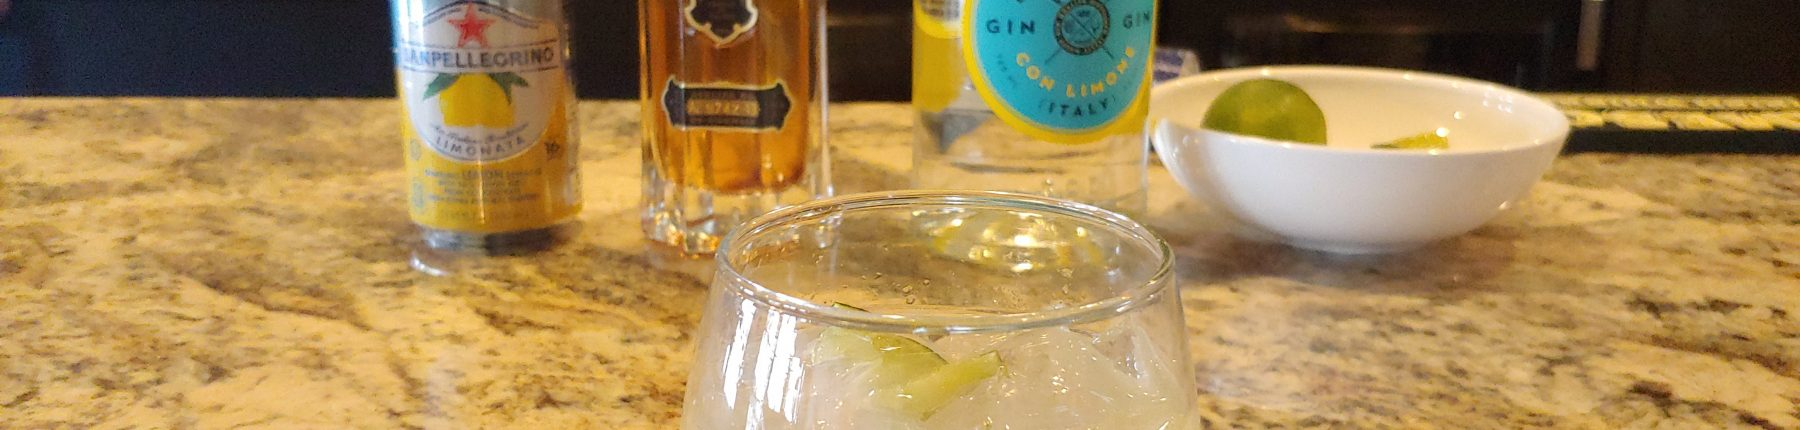 A cocktail placed in front of a can of lemonade, a St. Germain liquor bottle and a bottle of gin